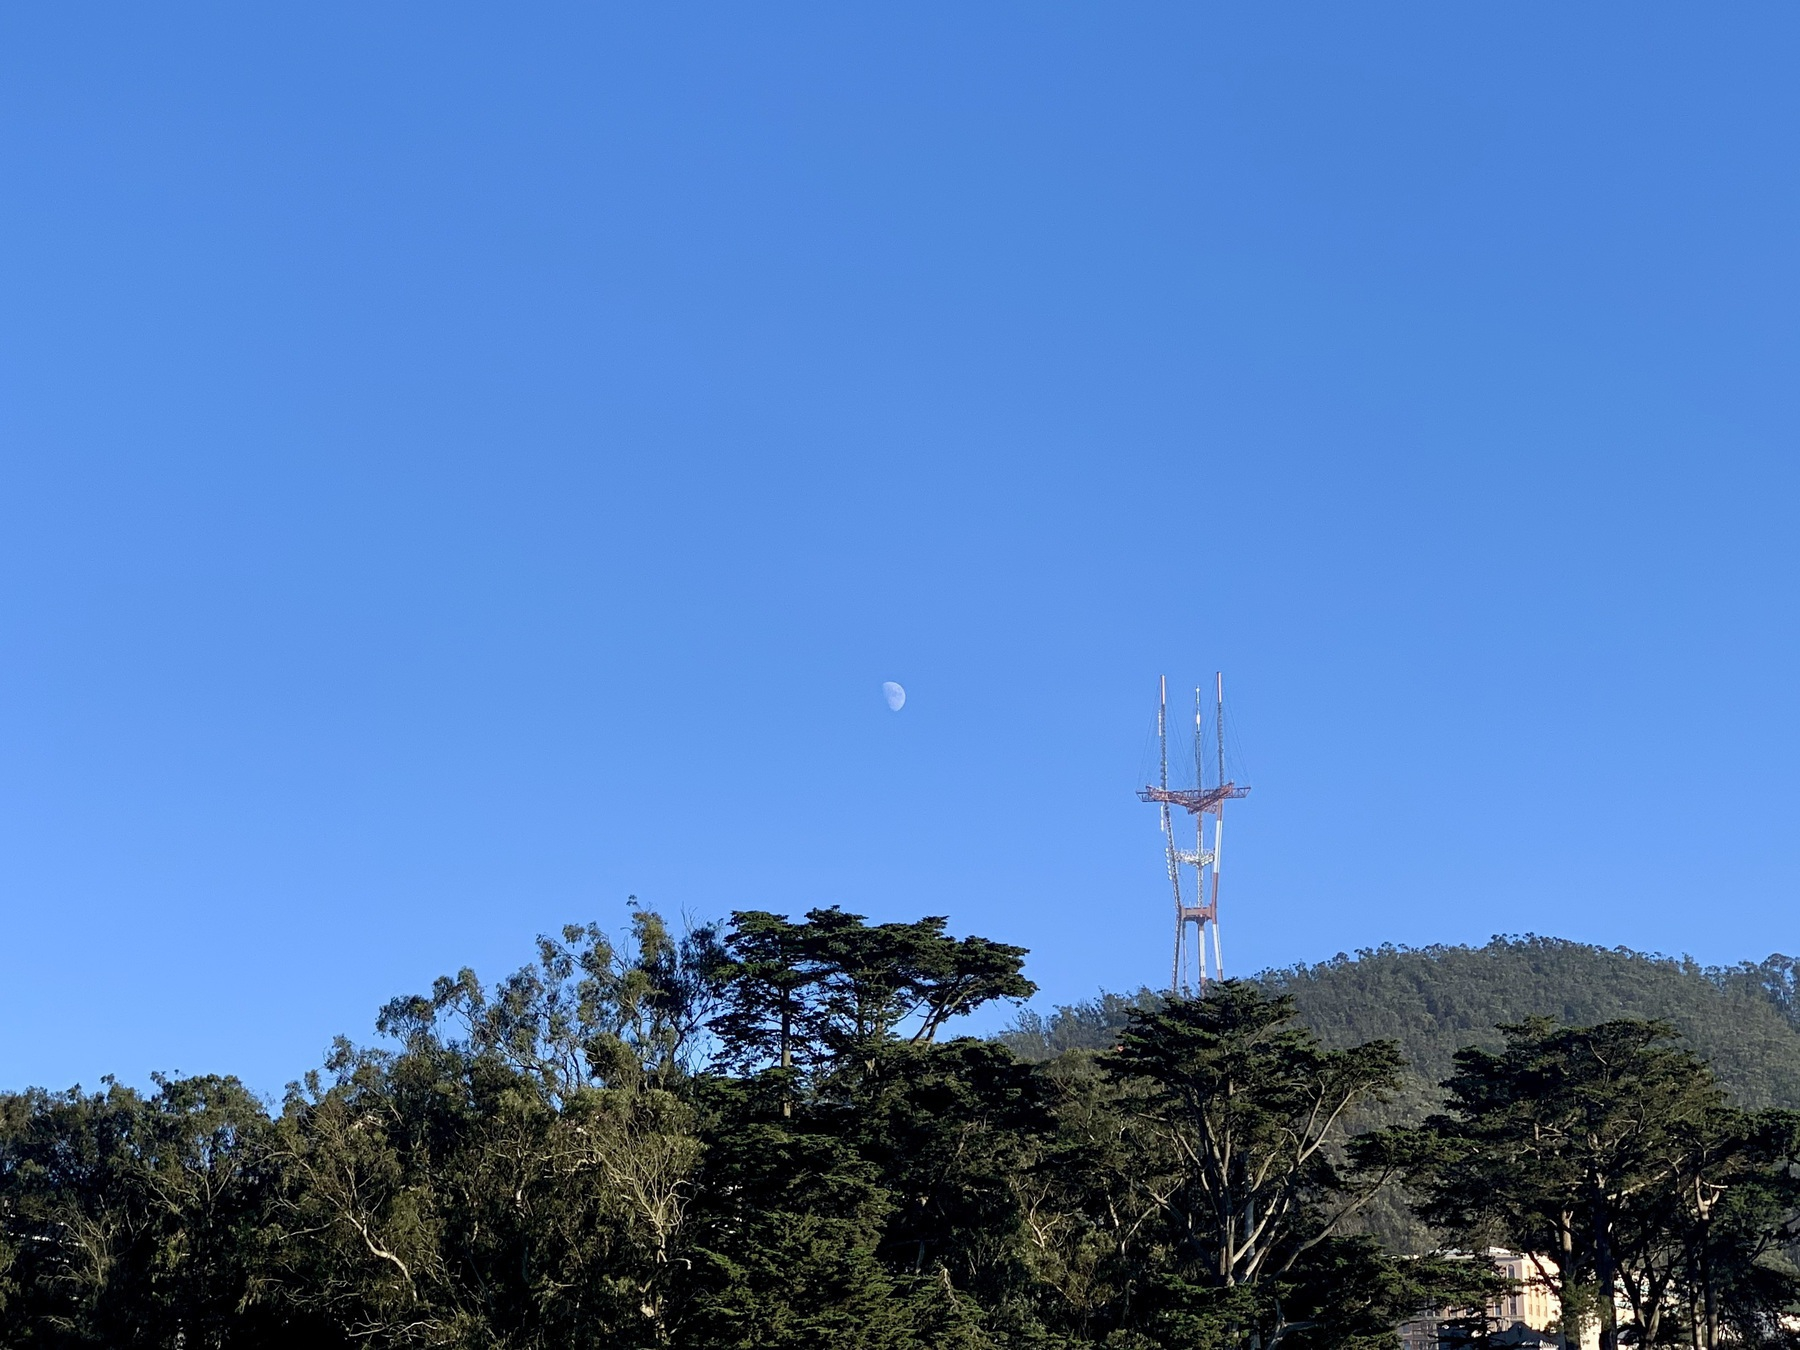 Photo of the sky over San Francisco showing first quarter moon and Sutro Tower